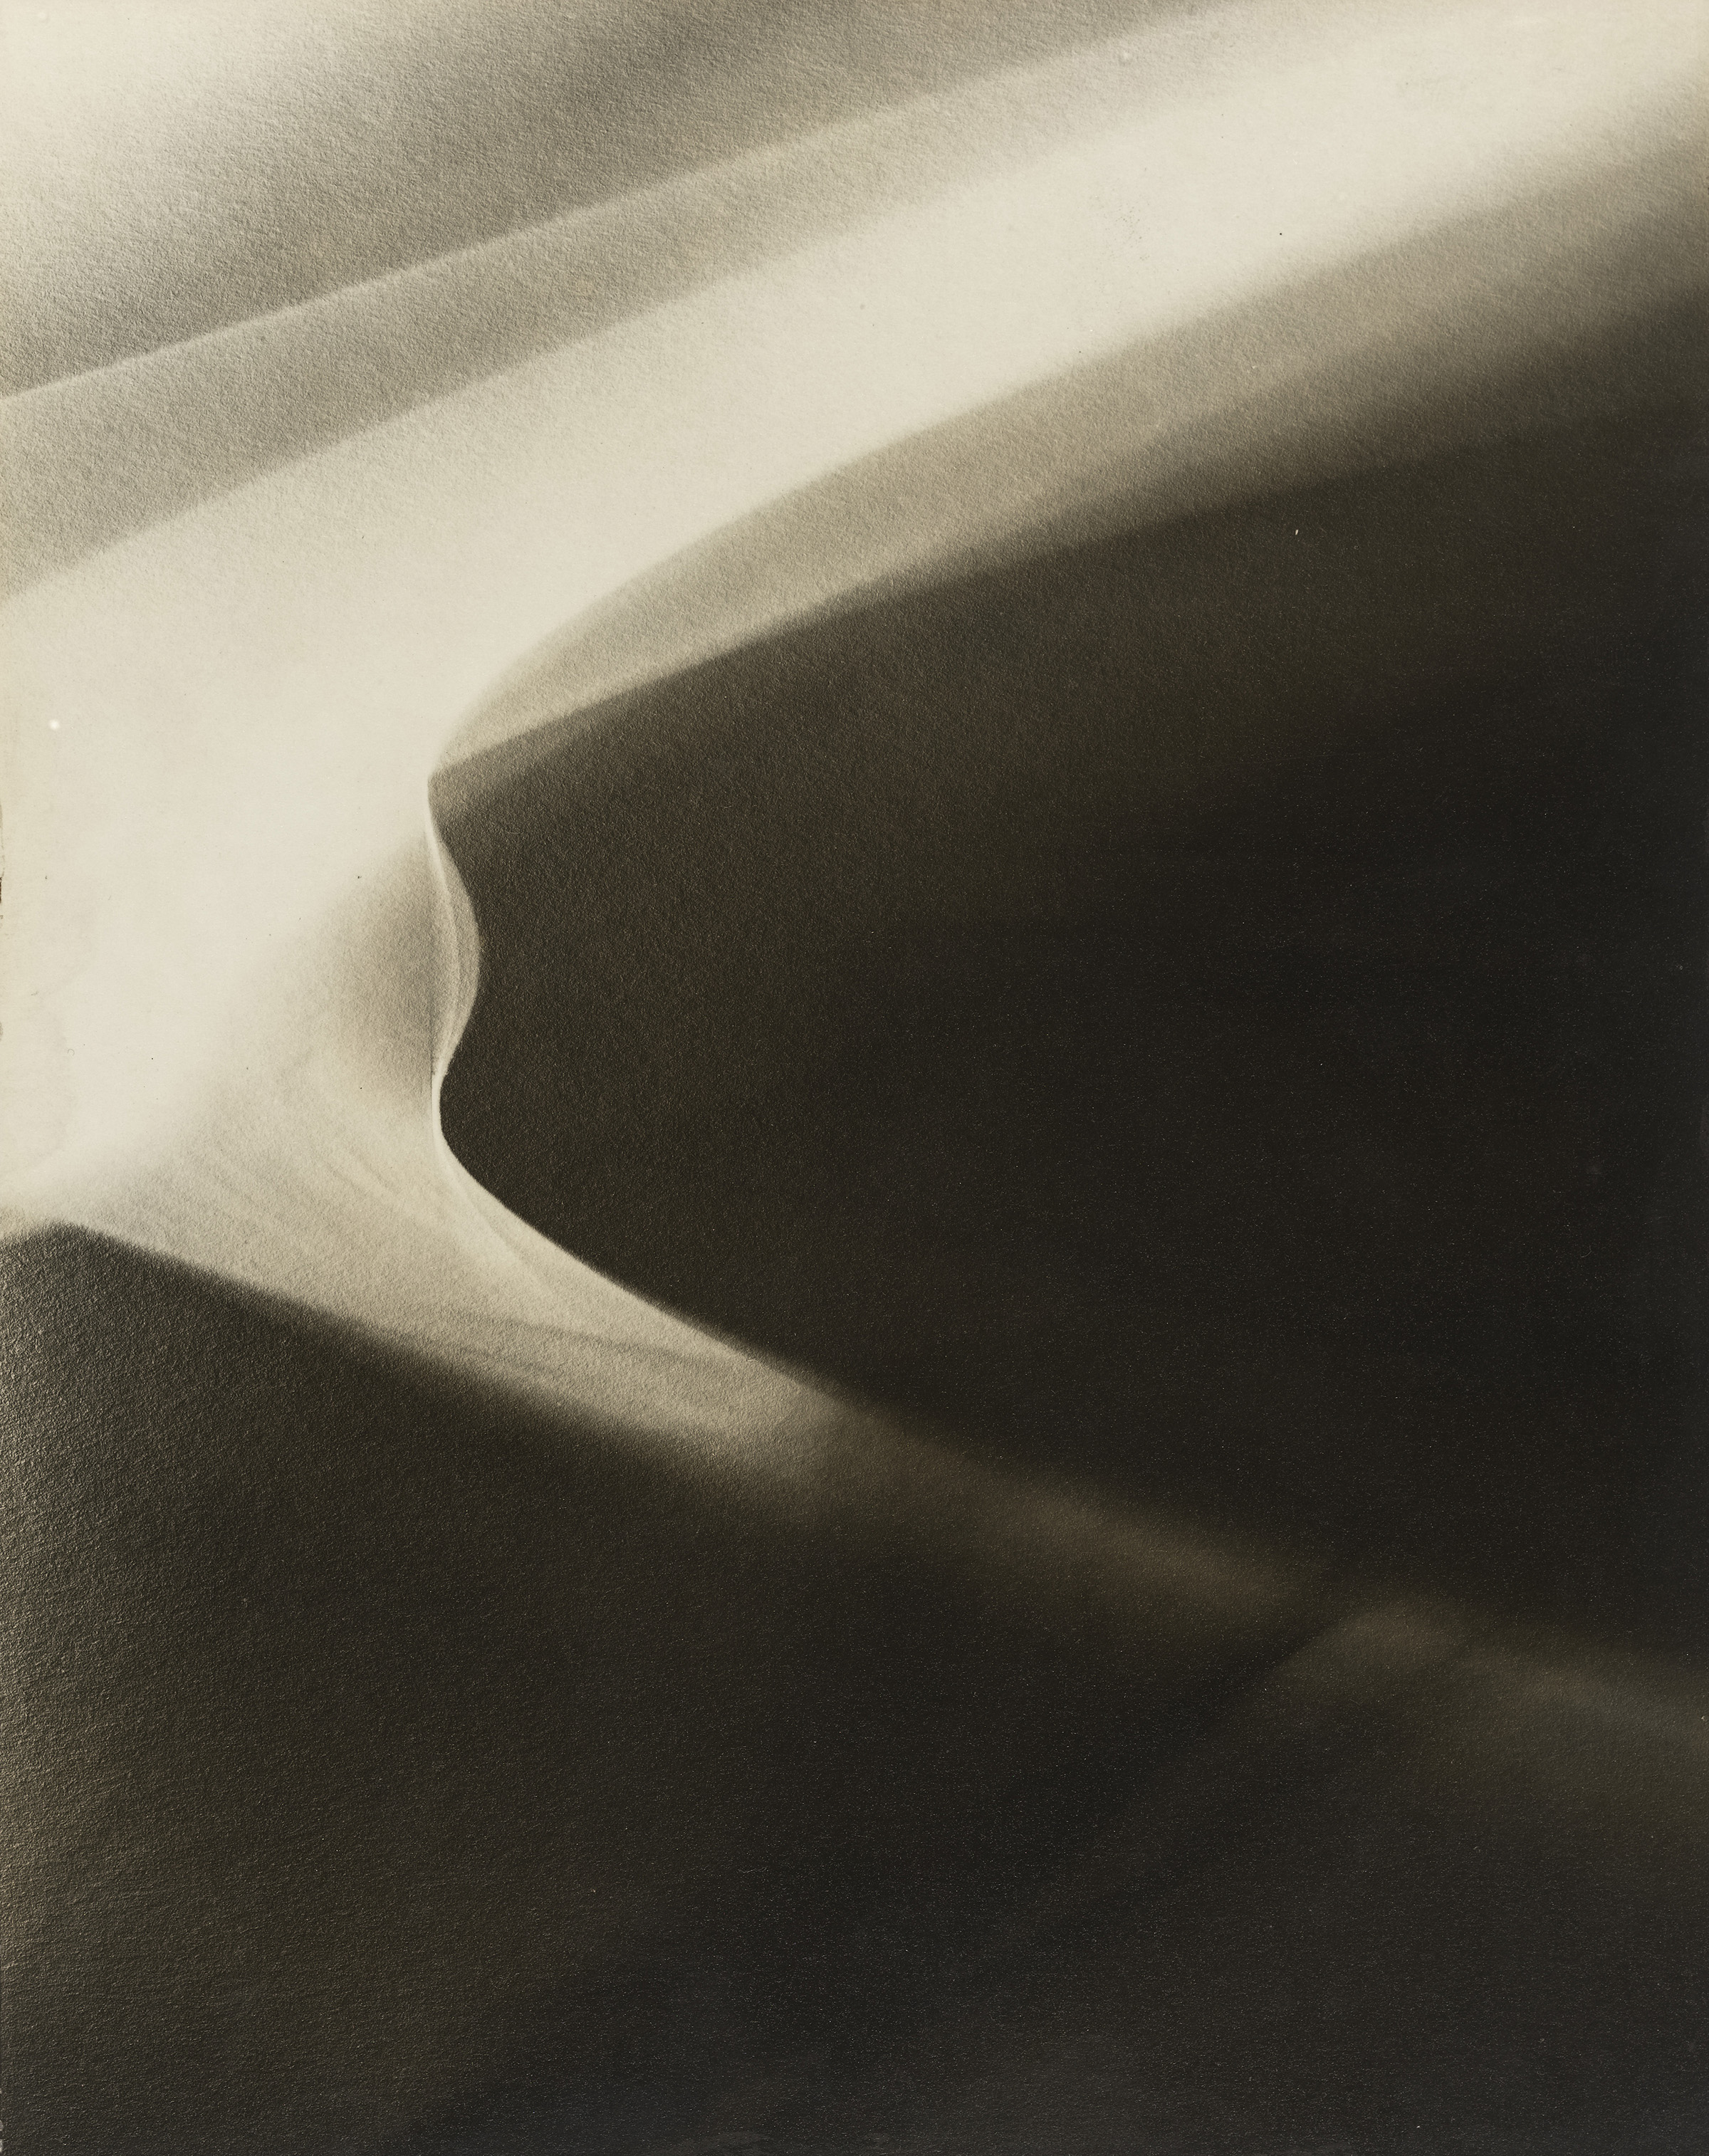 """LOTTE JACOBI (American, born Germany. 1896–1990) Abstraction #4 c. 1945-48 Gelatin silver print 9 3/4 x 7 7/8"""" (24.8 x 19.8 cm) Gift of Mrs. Charles Liebman 475.1960"""